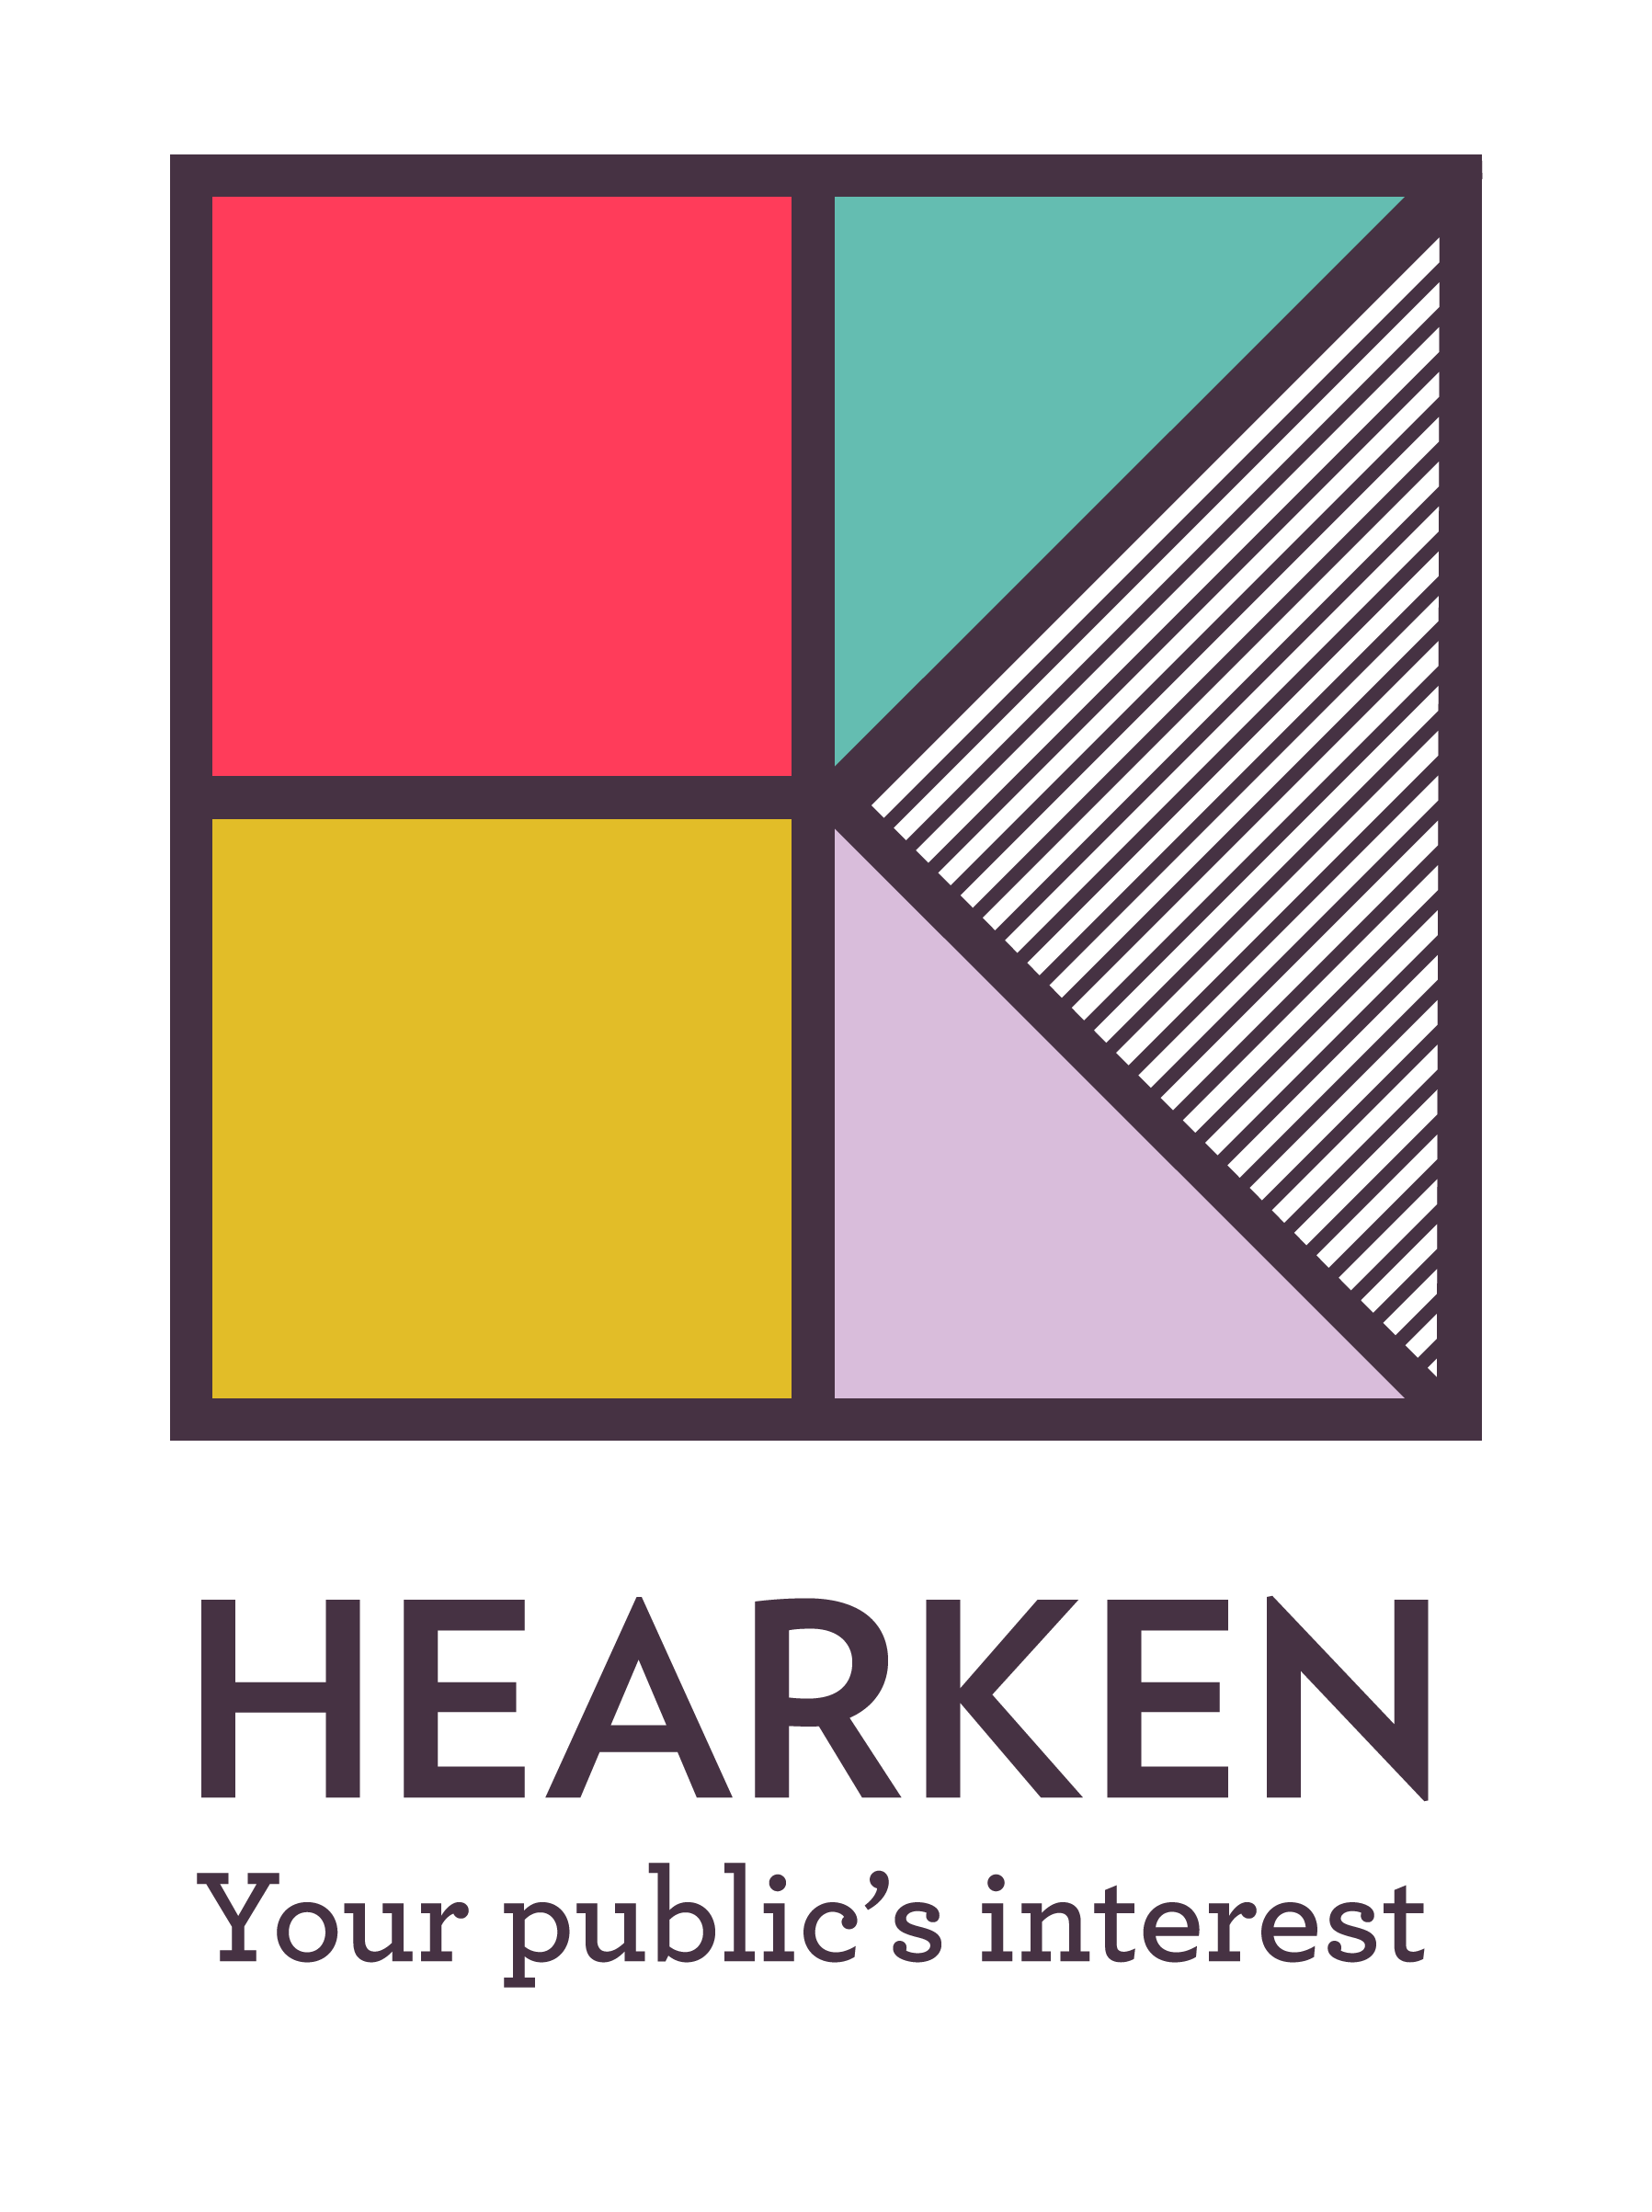 Hearken logo with the tagline-- Your public's interest